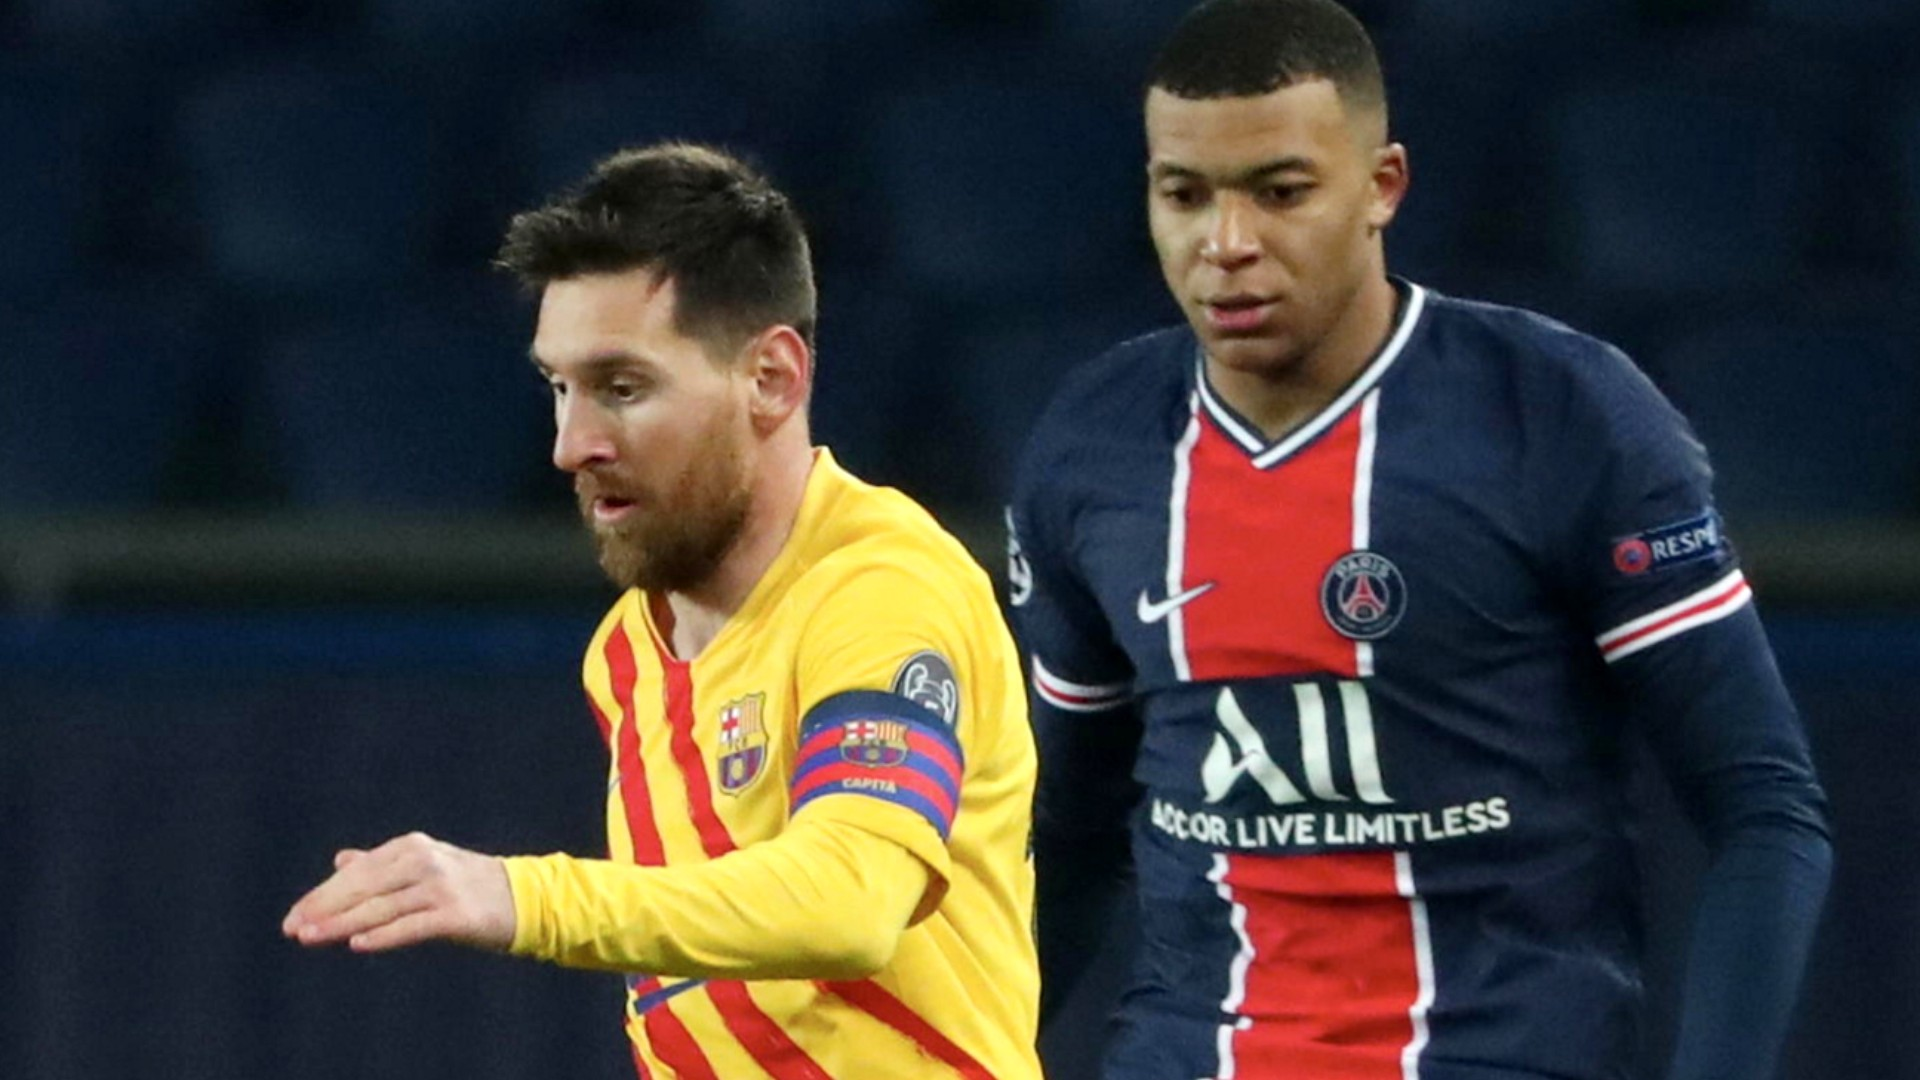 Lionel Messi to PSG: the latest on the biggest imminent signing of the summer Eurocup transfer window